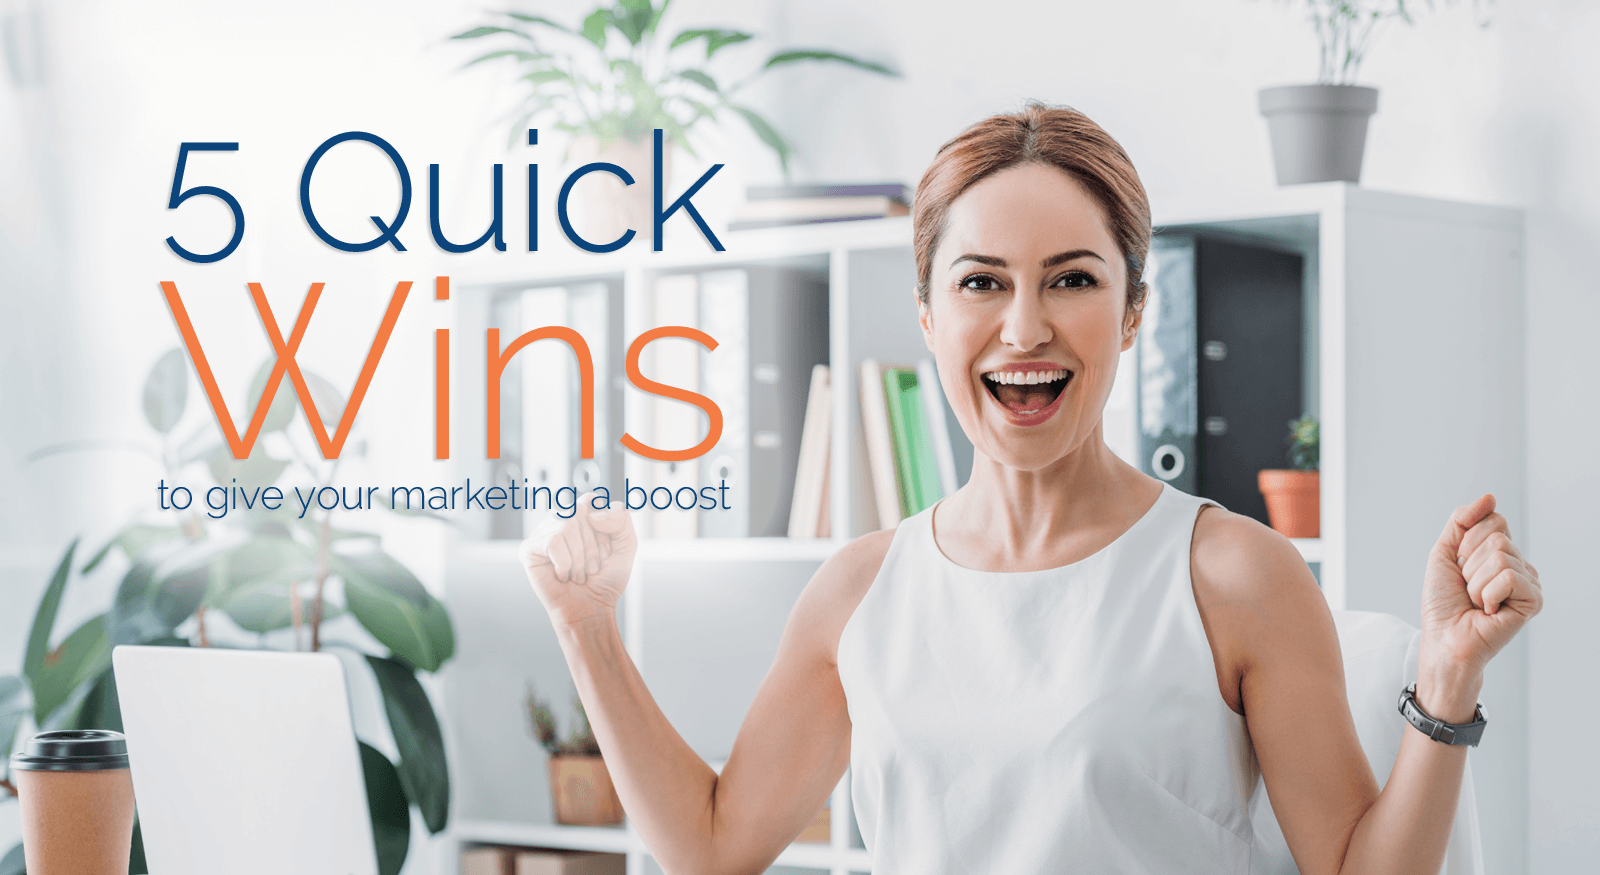 5 quick wins to give marketing a boost